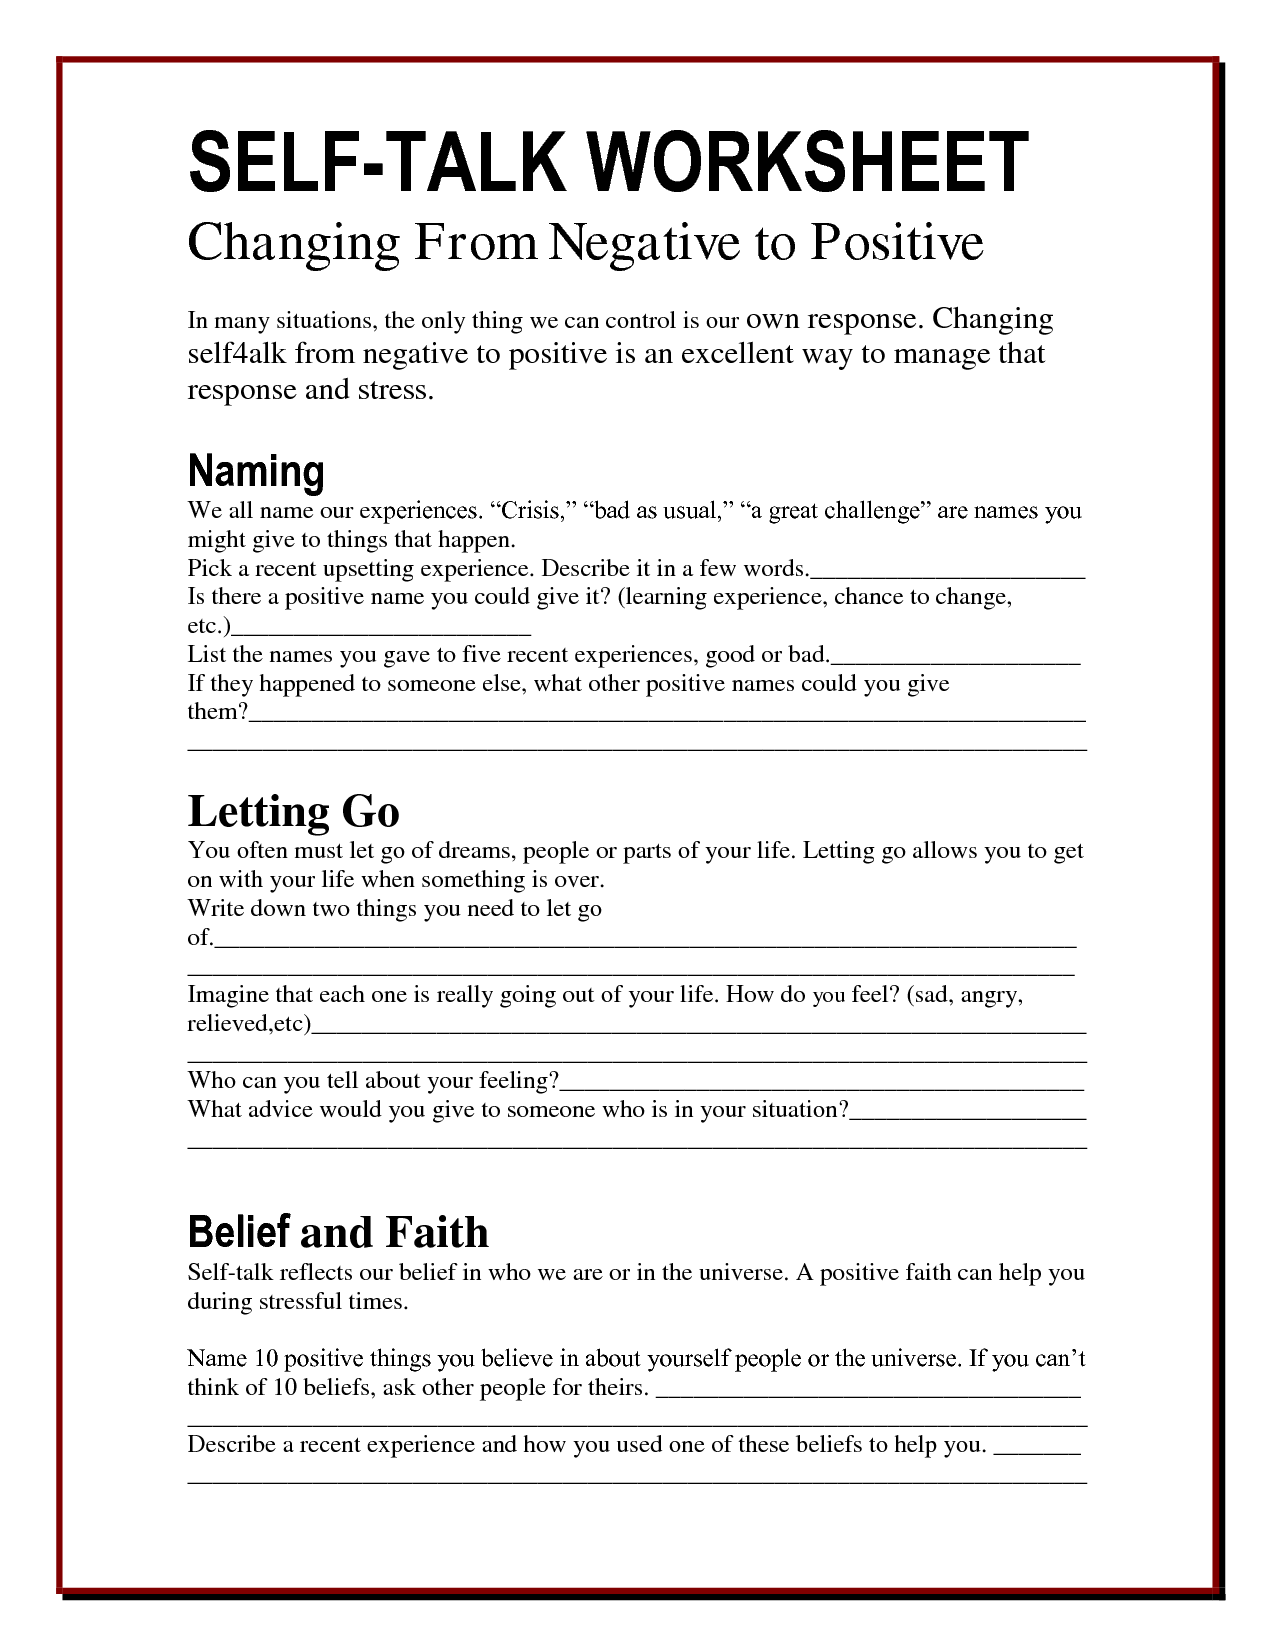 Uncategorized Building Self Esteem Worksheets for more tips to better manage the anxiety in your life visit self talk worksheet changing negative positive behaviour